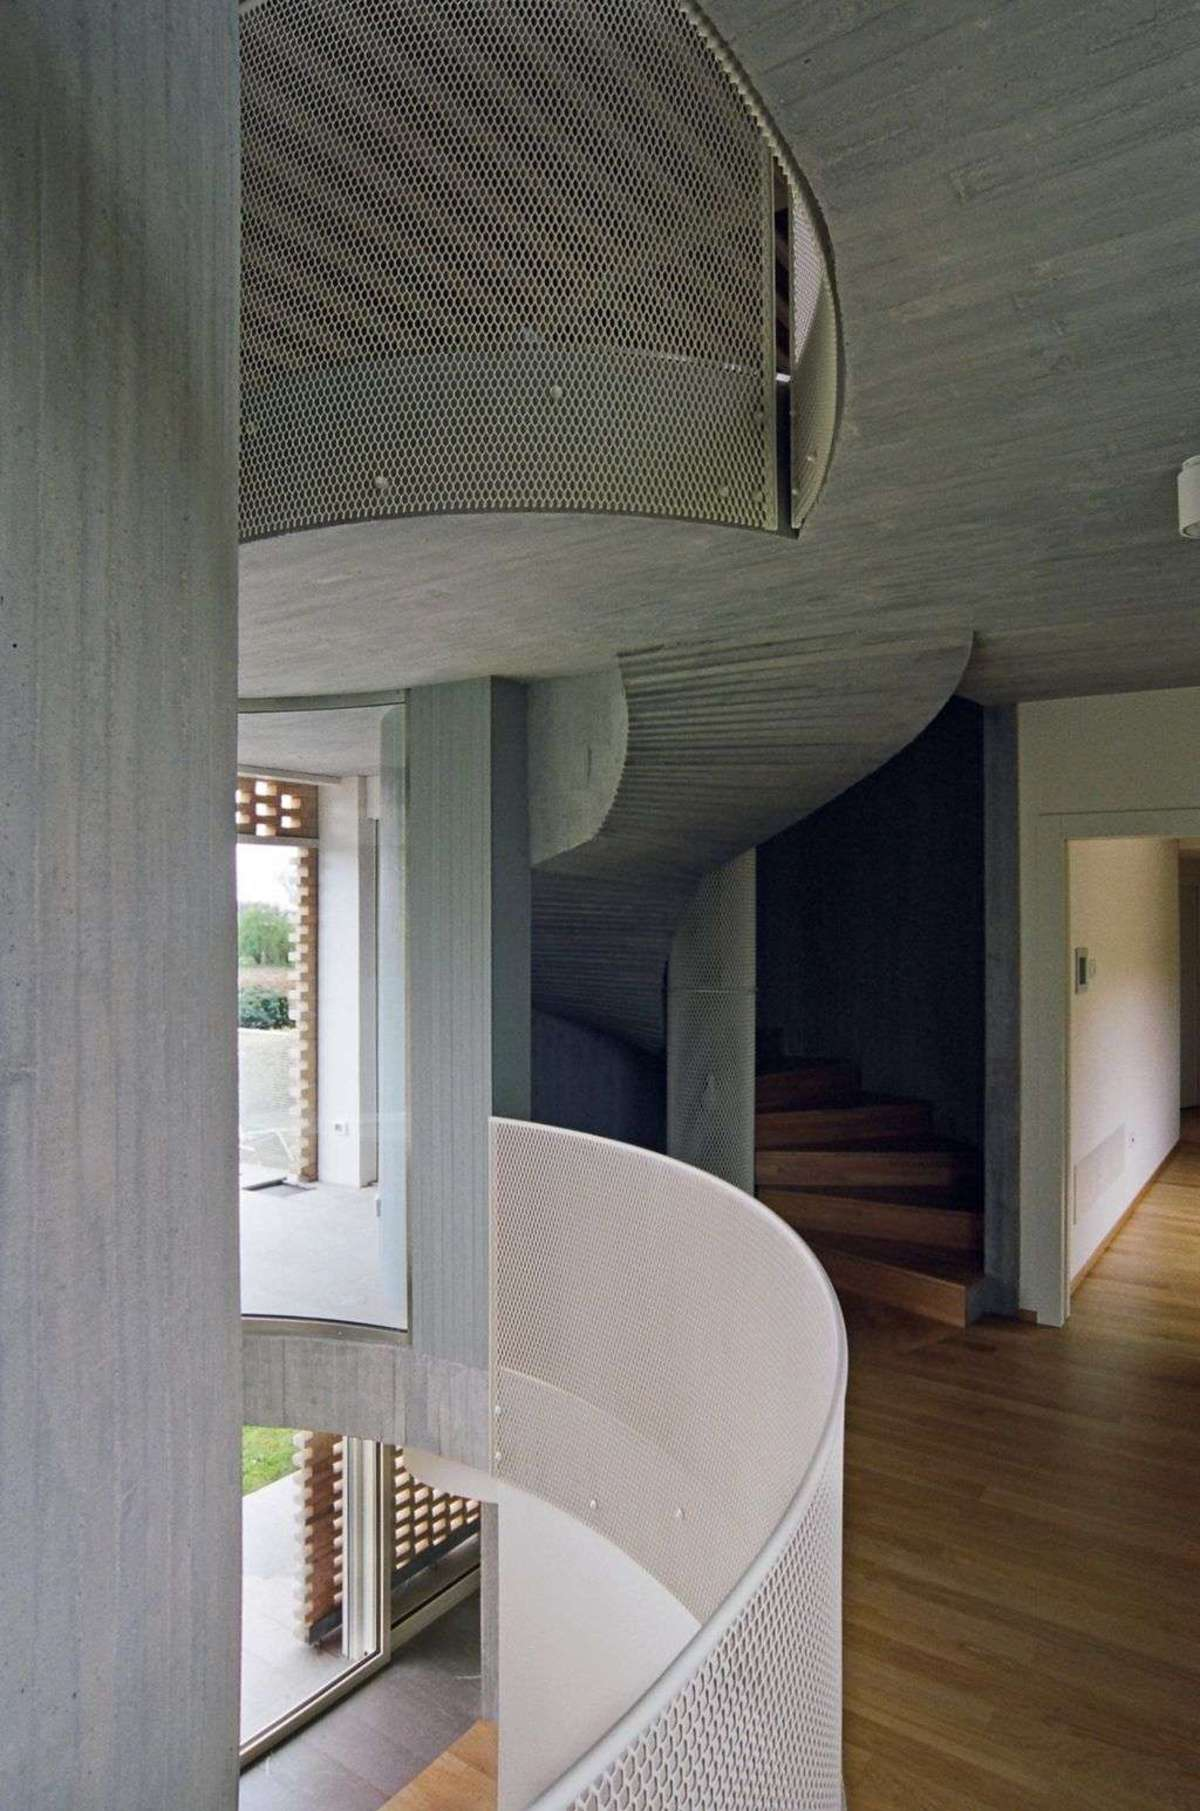 Elasticospa+3: The restoration of a country house in Salice